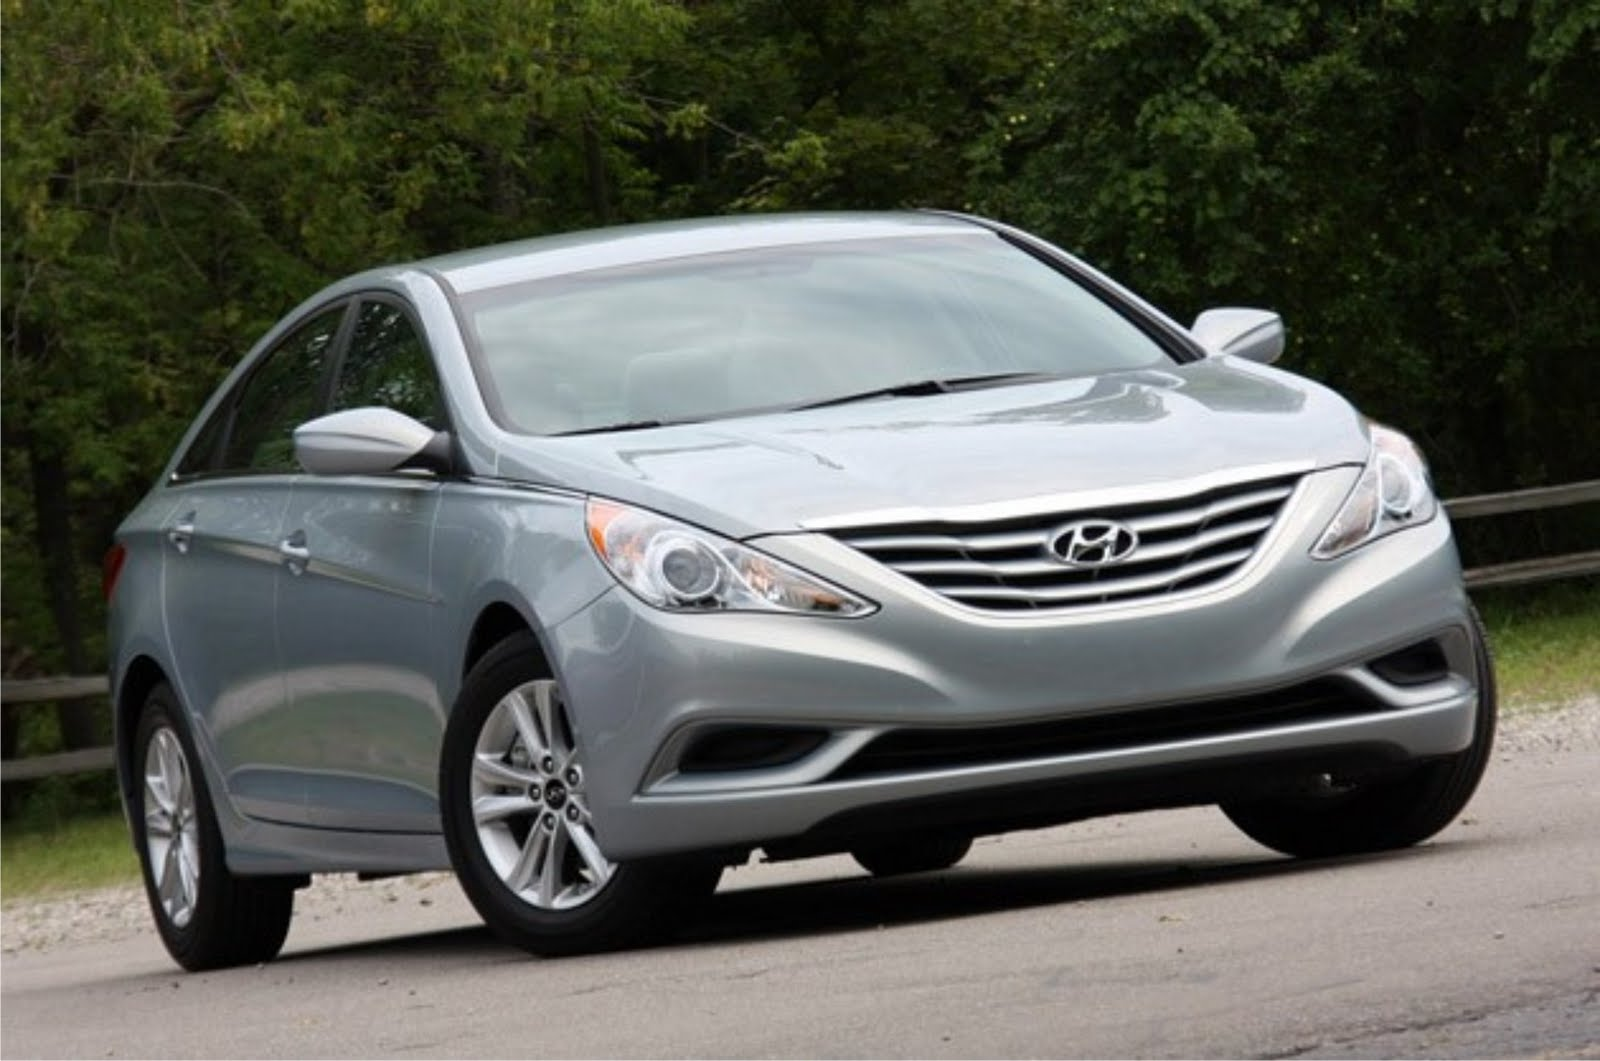 hyundai sonata 2011 news review car sale report review. Black Bedroom Furniture Sets. Home Design Ideas